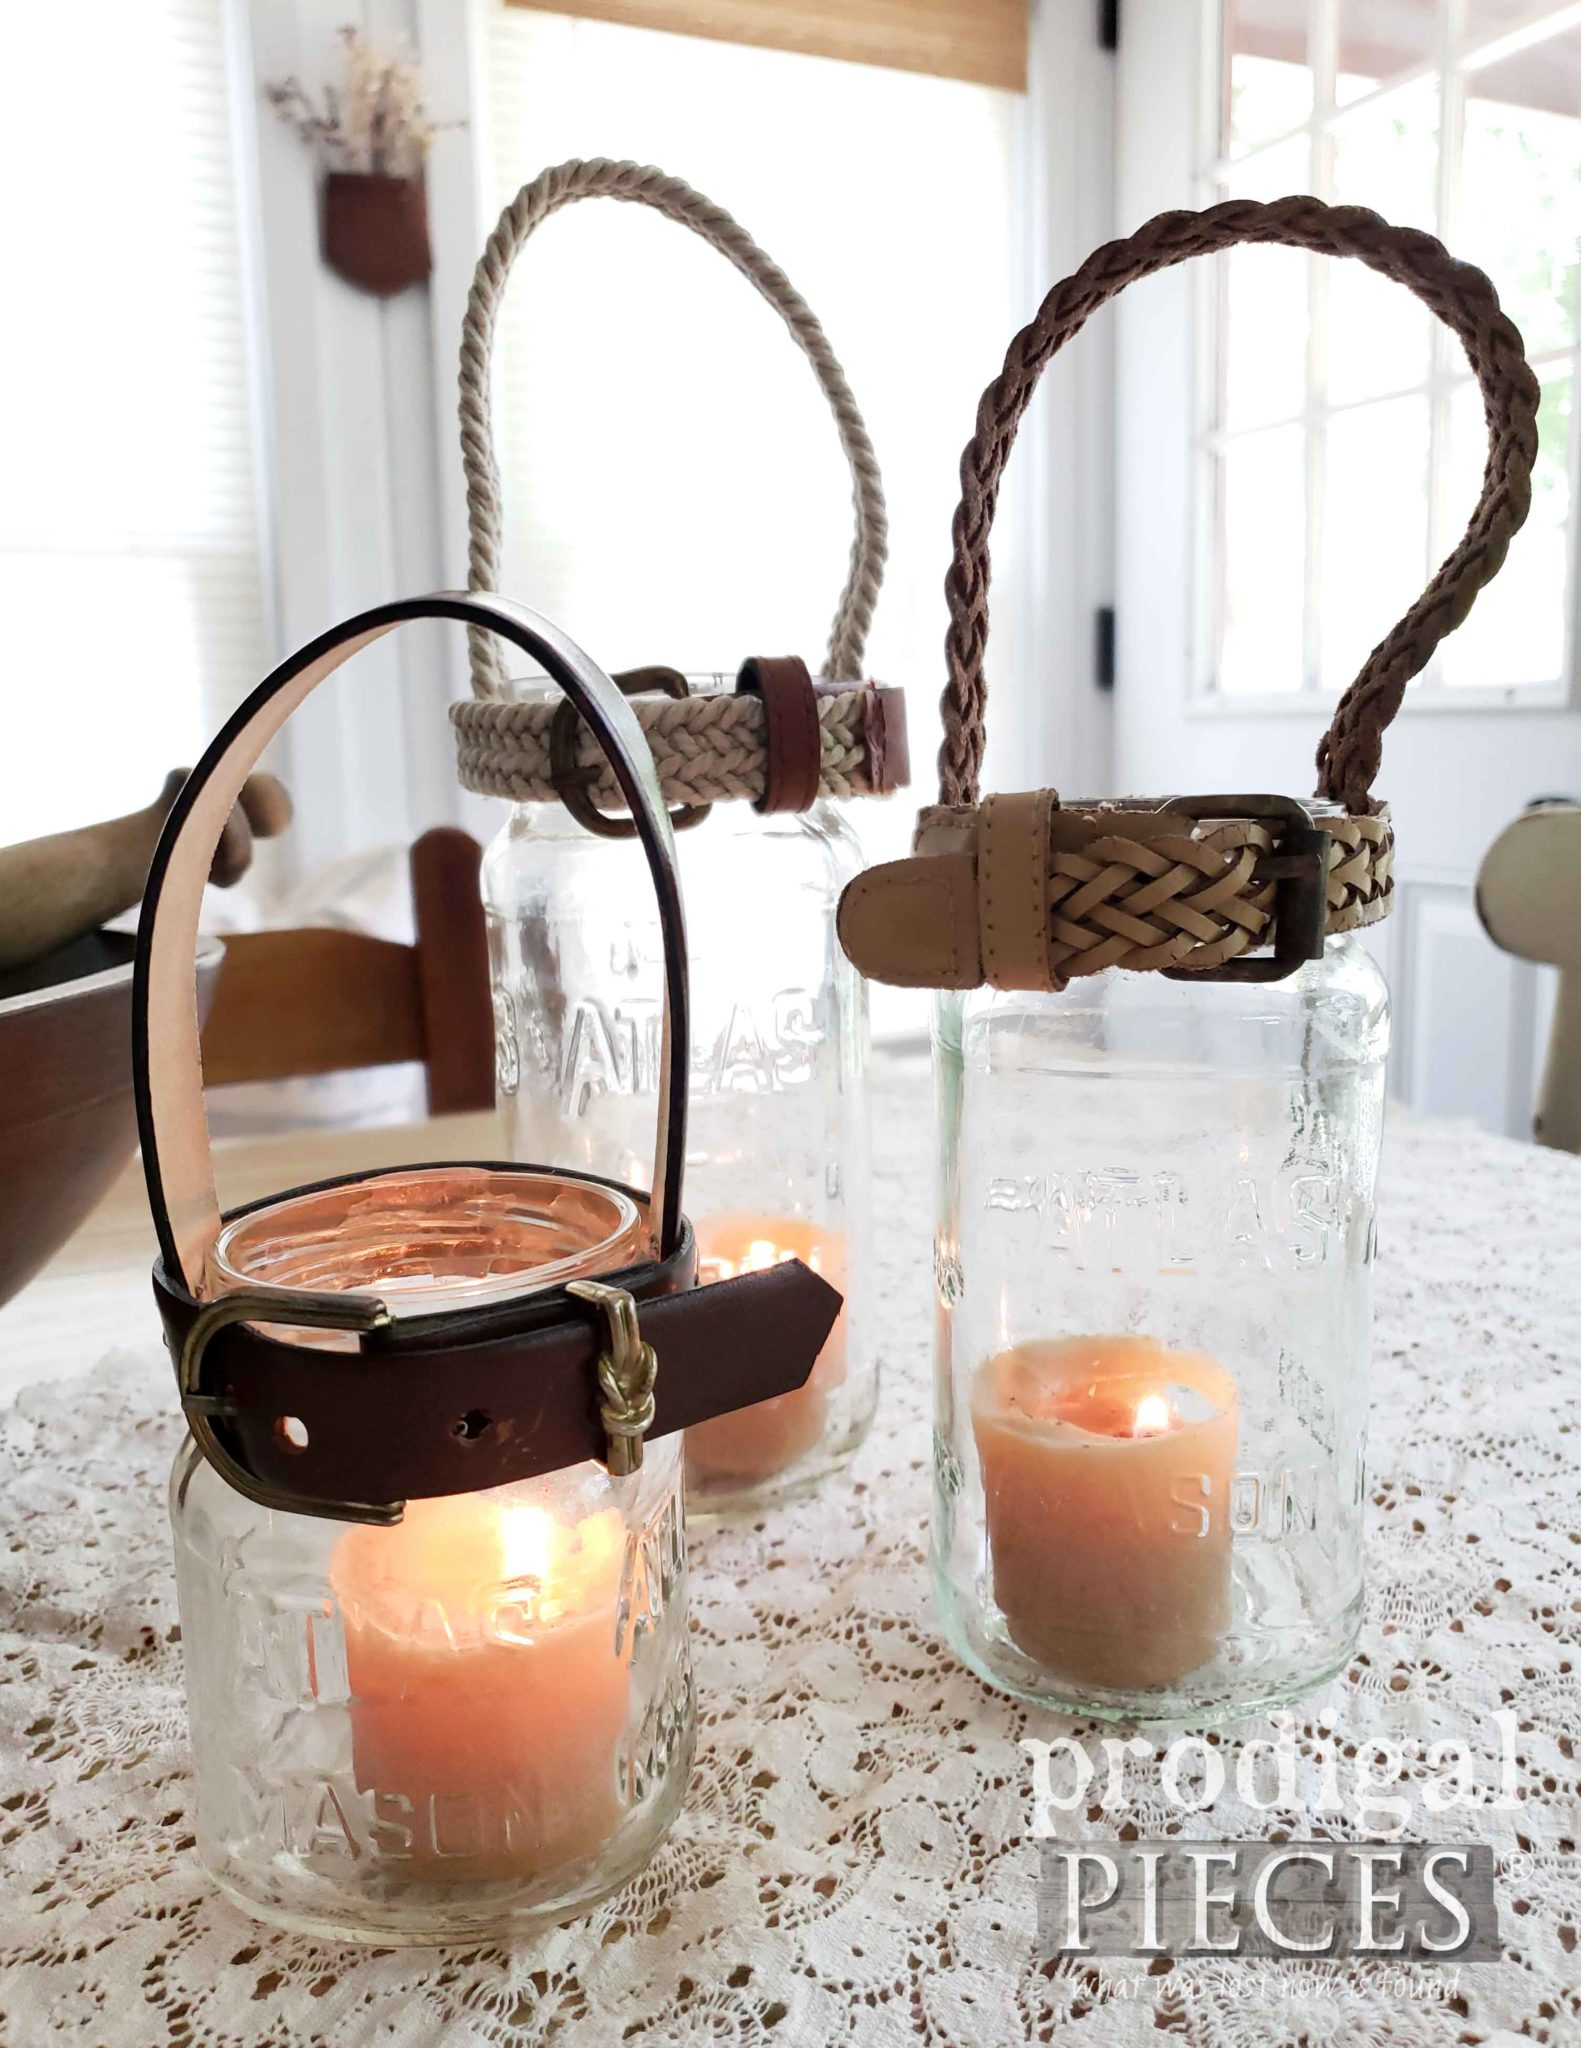 DIY Jar Candle Holders for Farmhouse Decor with Upcycled Belts by Larissa of Prodigal Pieces | prodigalpieces.com #prodigalpieces #diy #farmhouse #home #homedecor